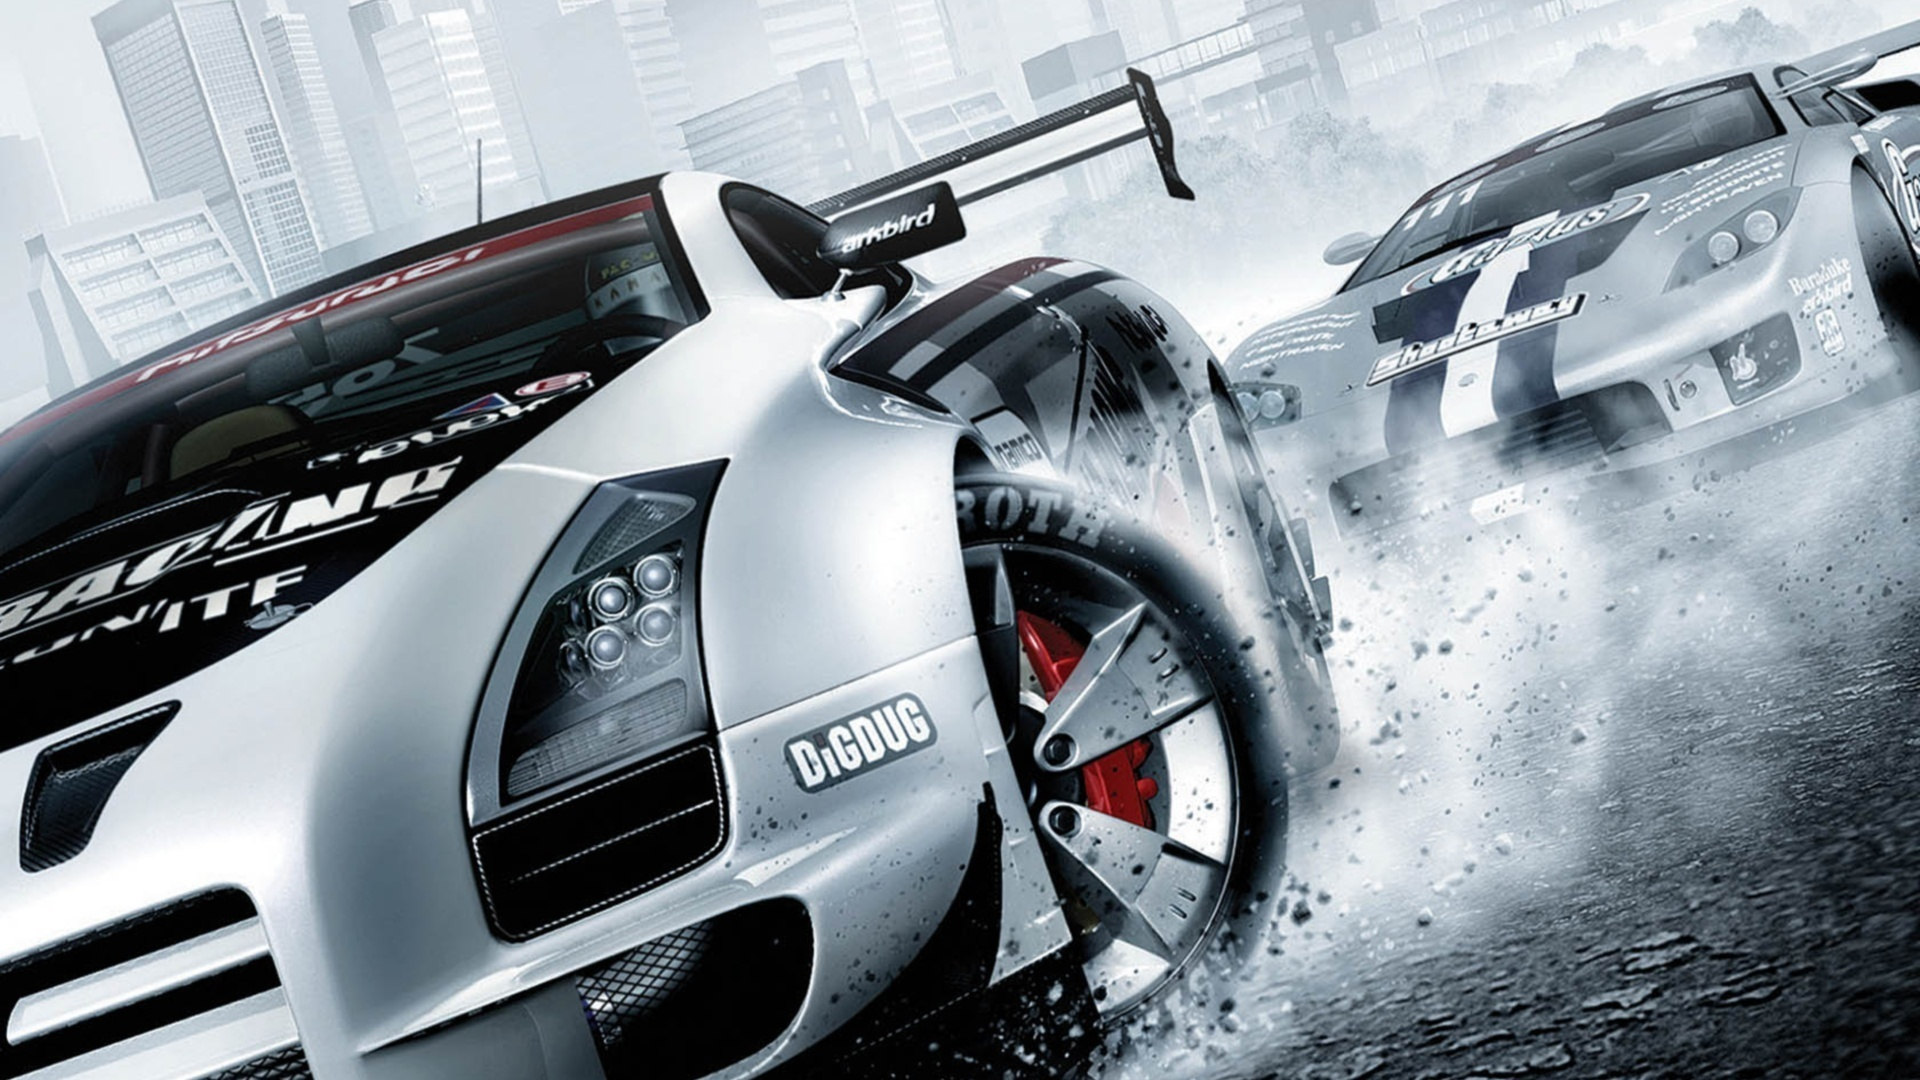 Hd Car Game Wallpapers 1080p 1920x1080 Download Hd Wallpaper Wallpapertip